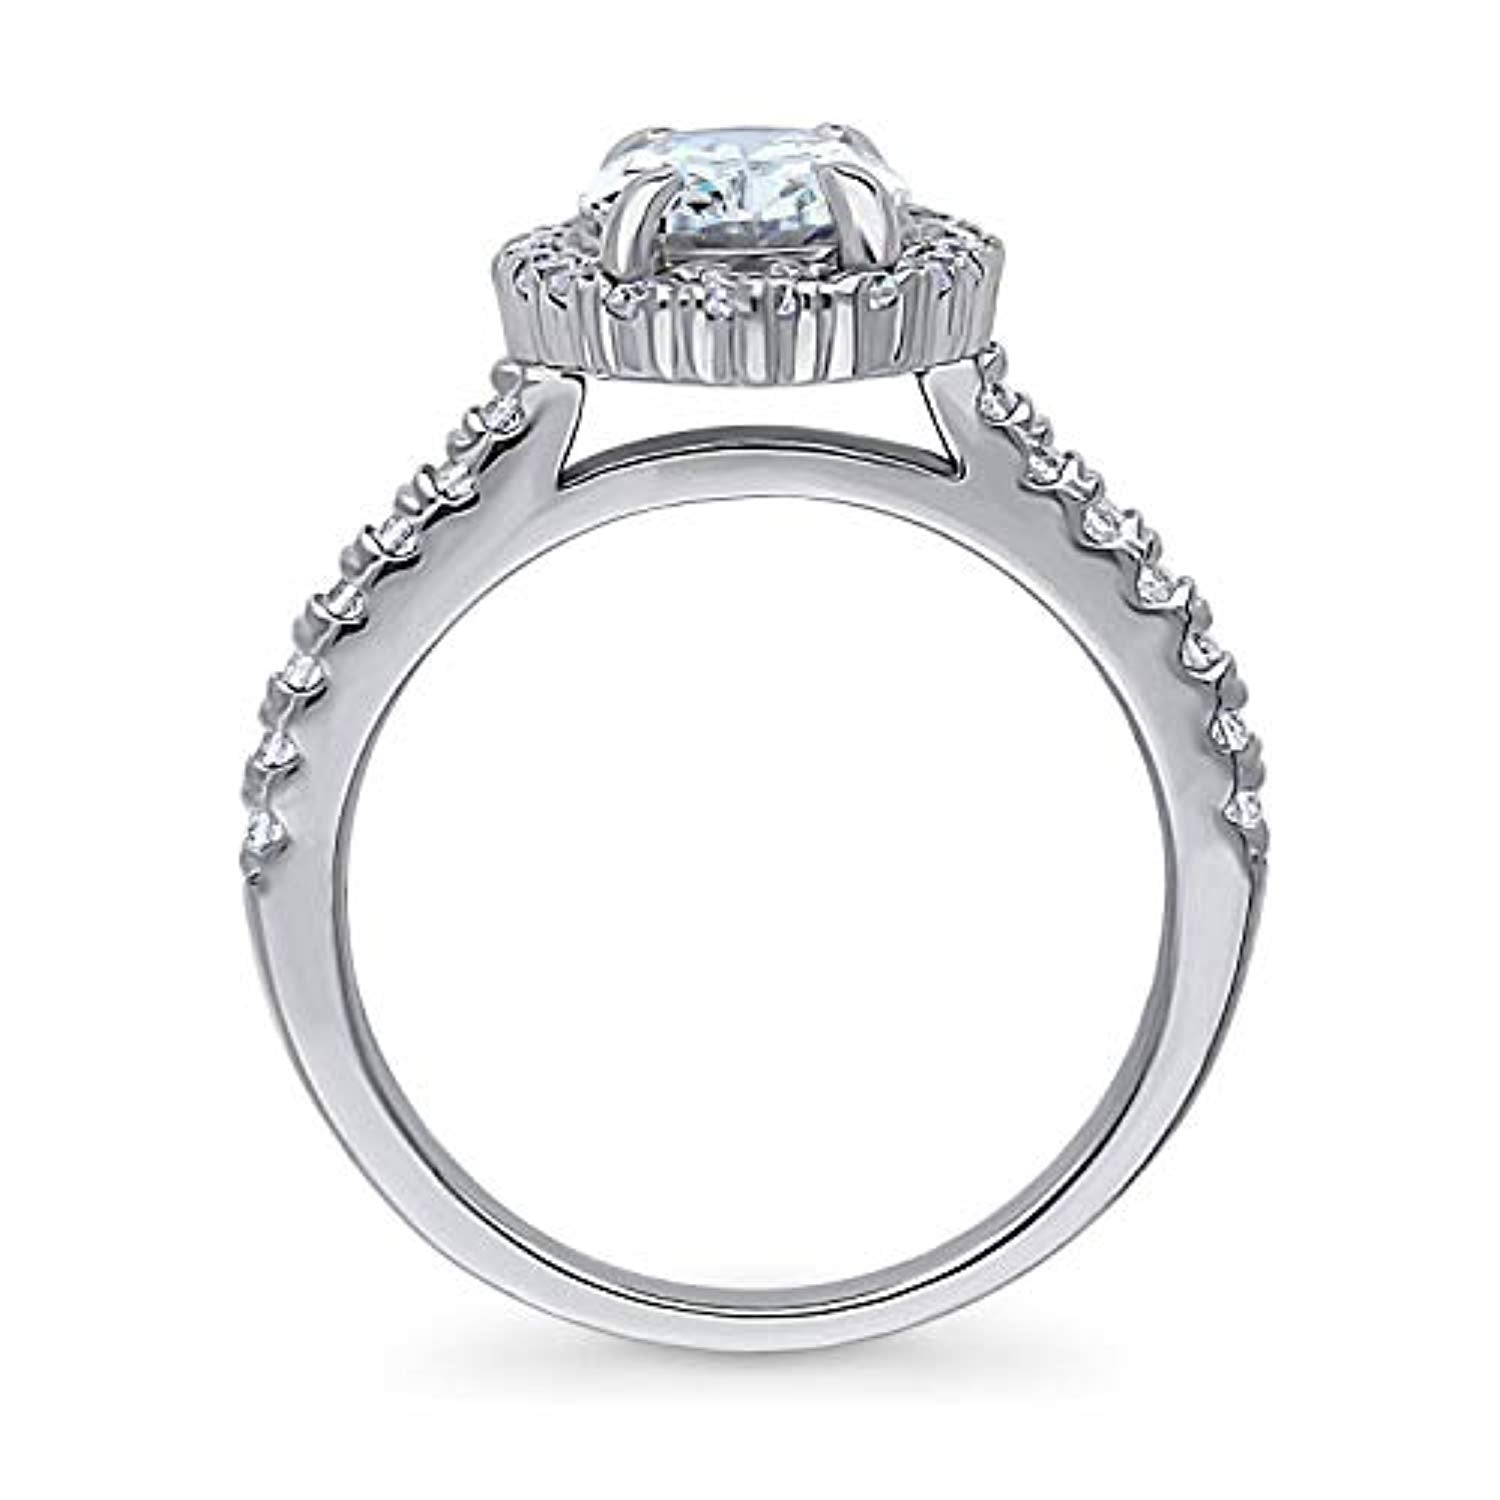 Rhodium Plated Sterling Silver Oval Cut Cubic Zirconia CZ Halo Engagement Ring